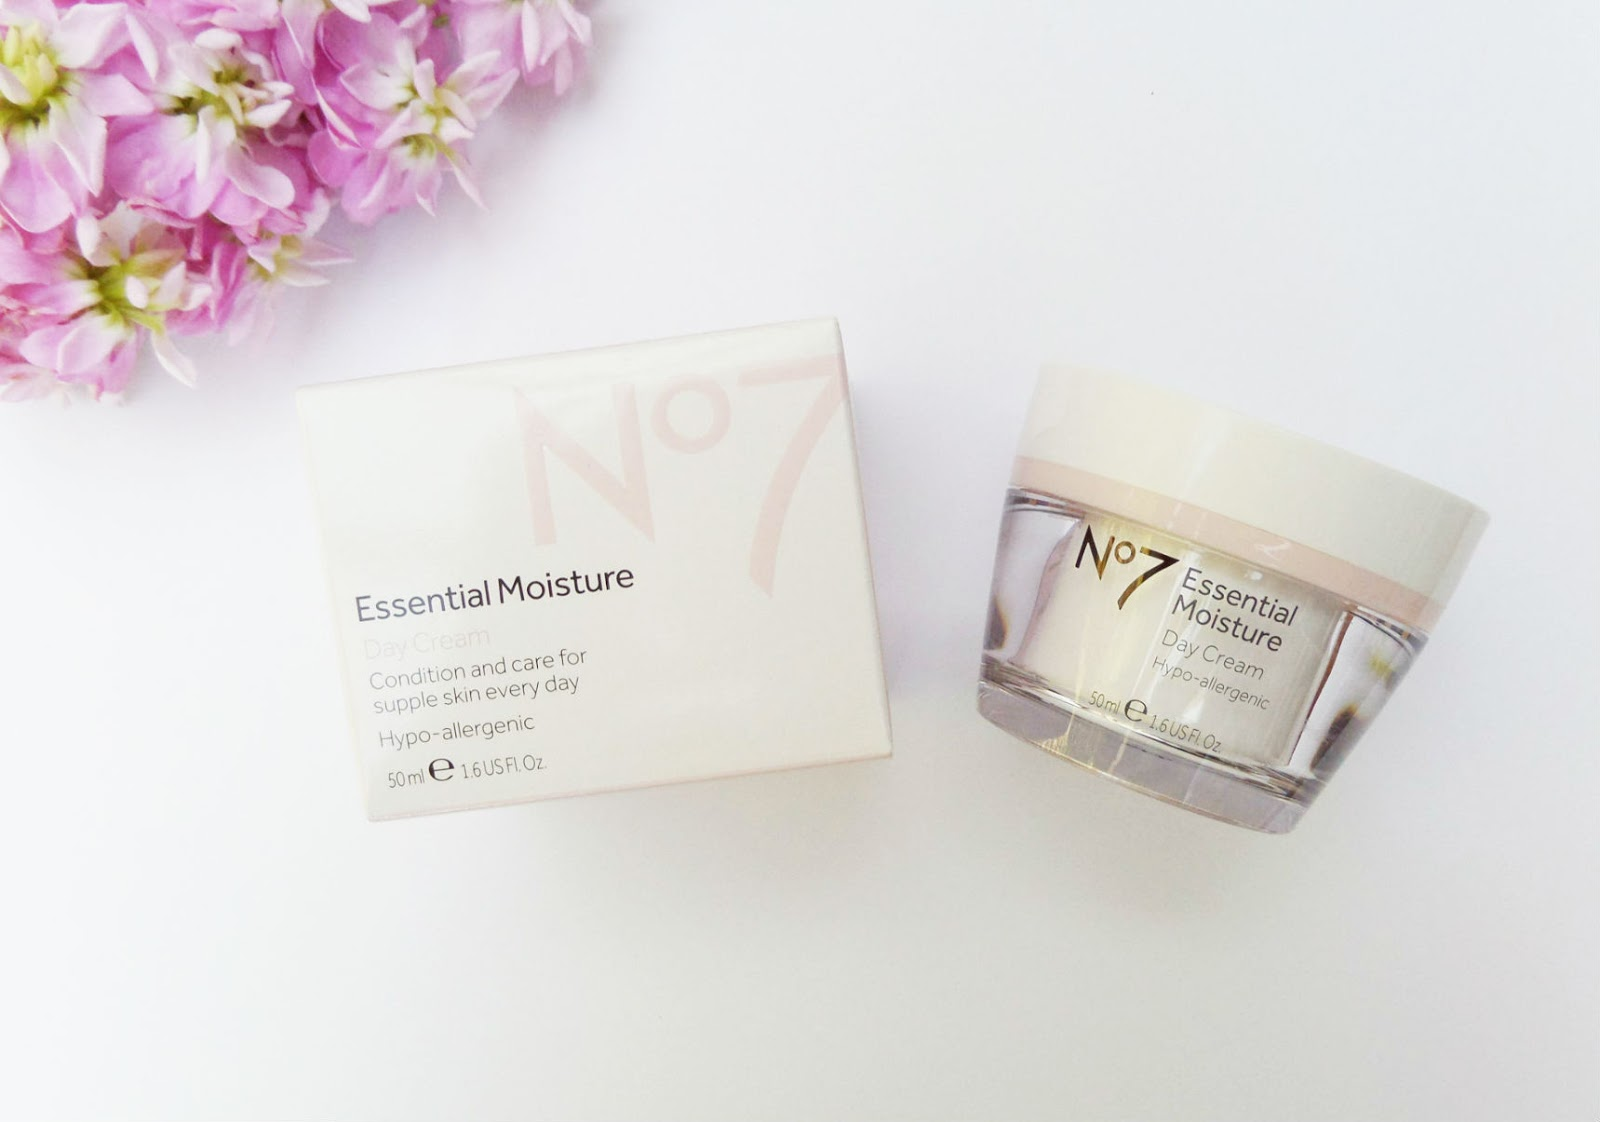 No 7 Essential Moisture Day Cream Review